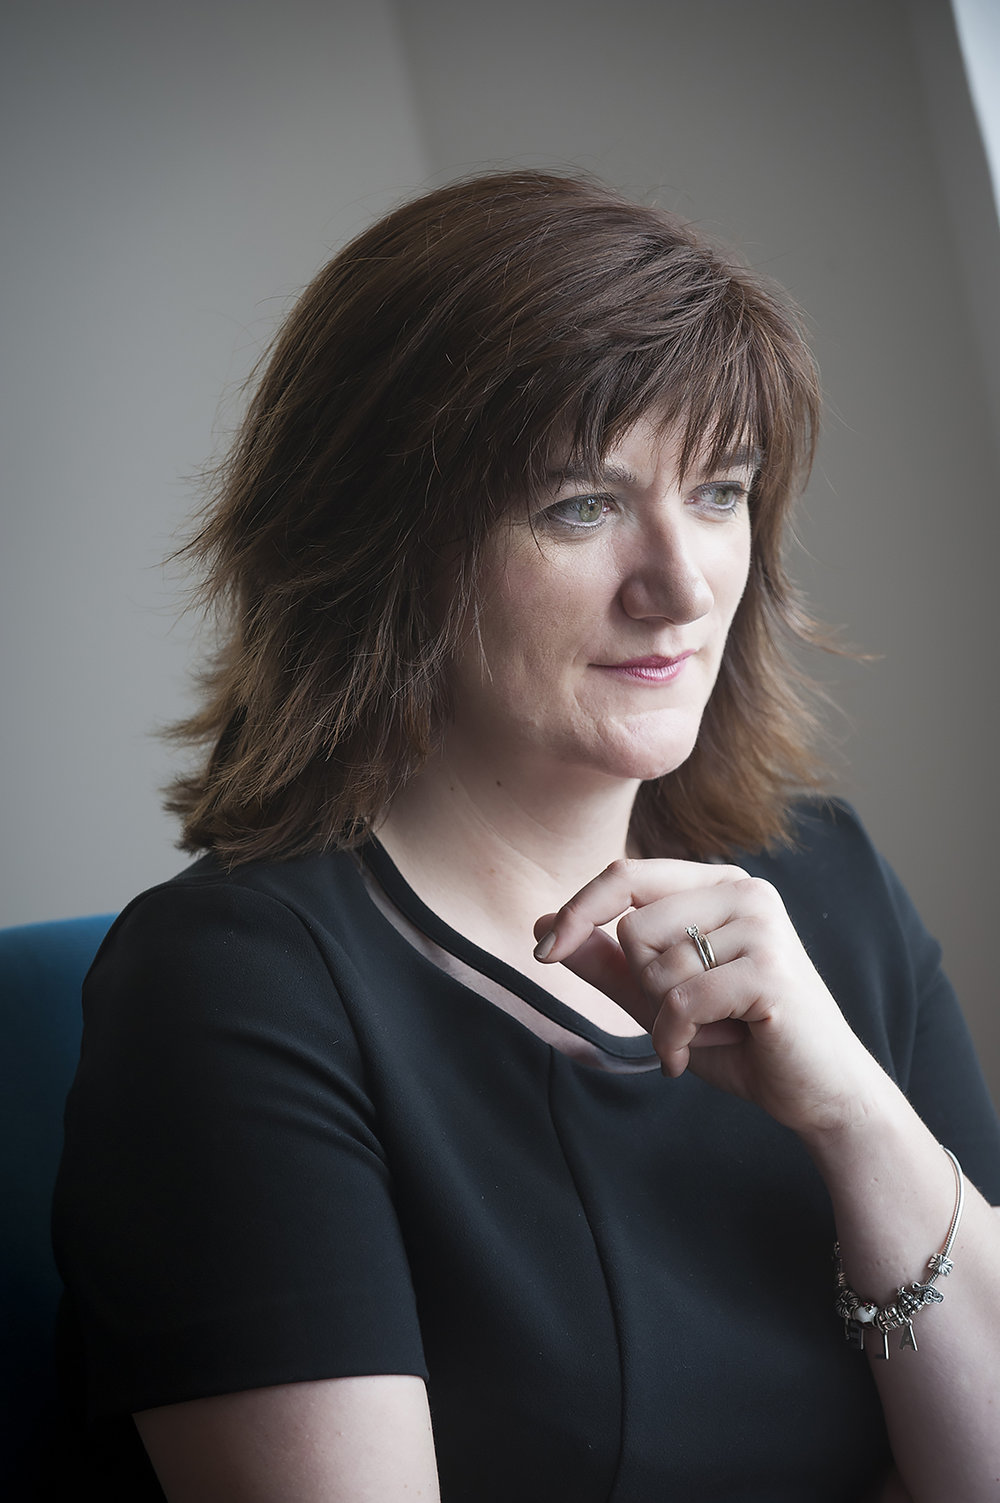 Portrait photography of Nicky Morgan, Conservative MP and former Secretary of State for Education